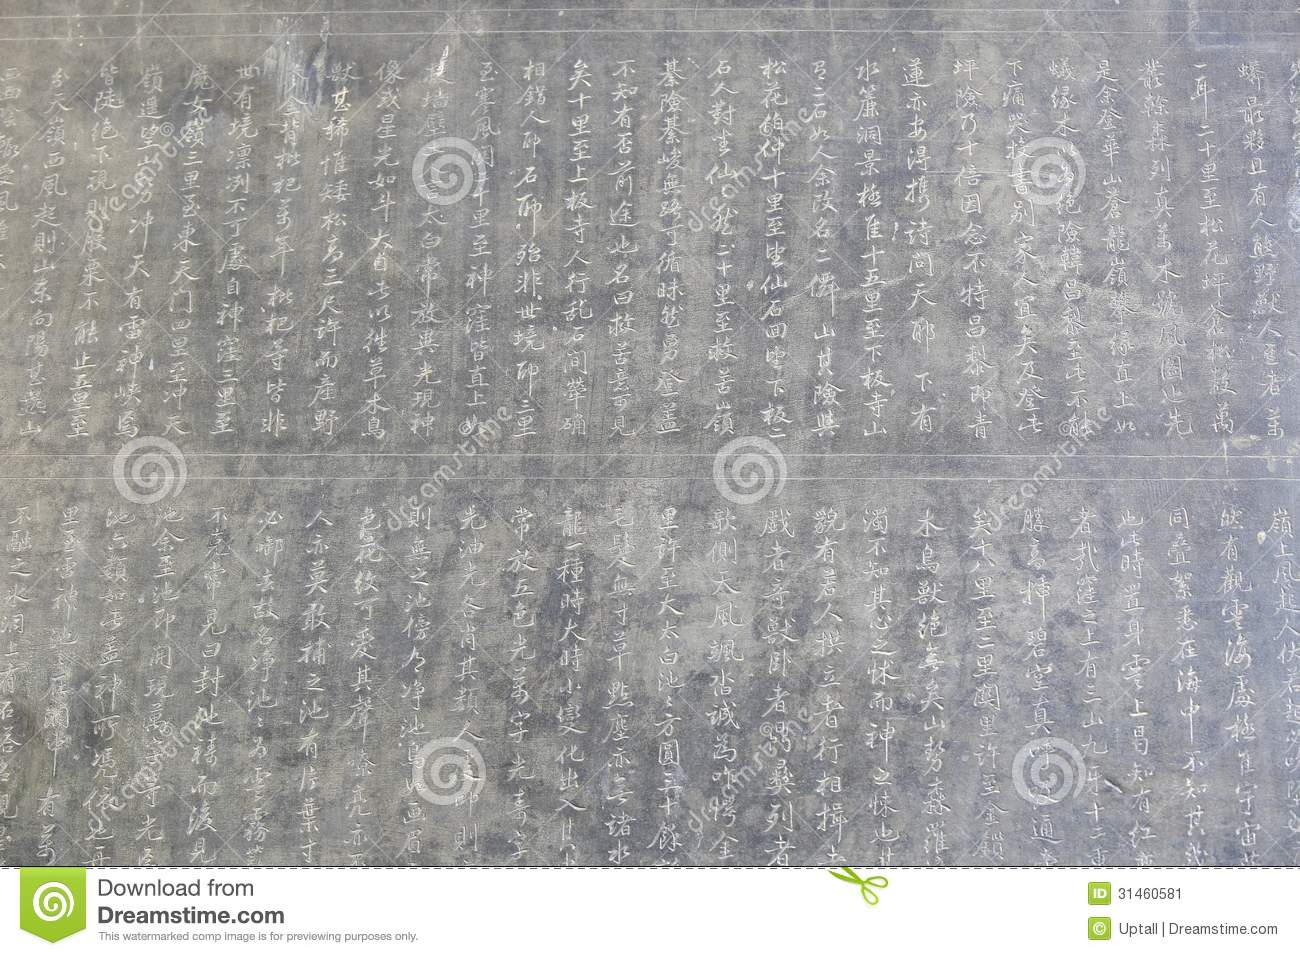 Ancient Chinese Calligraphy Art Stock Image Image 31460581